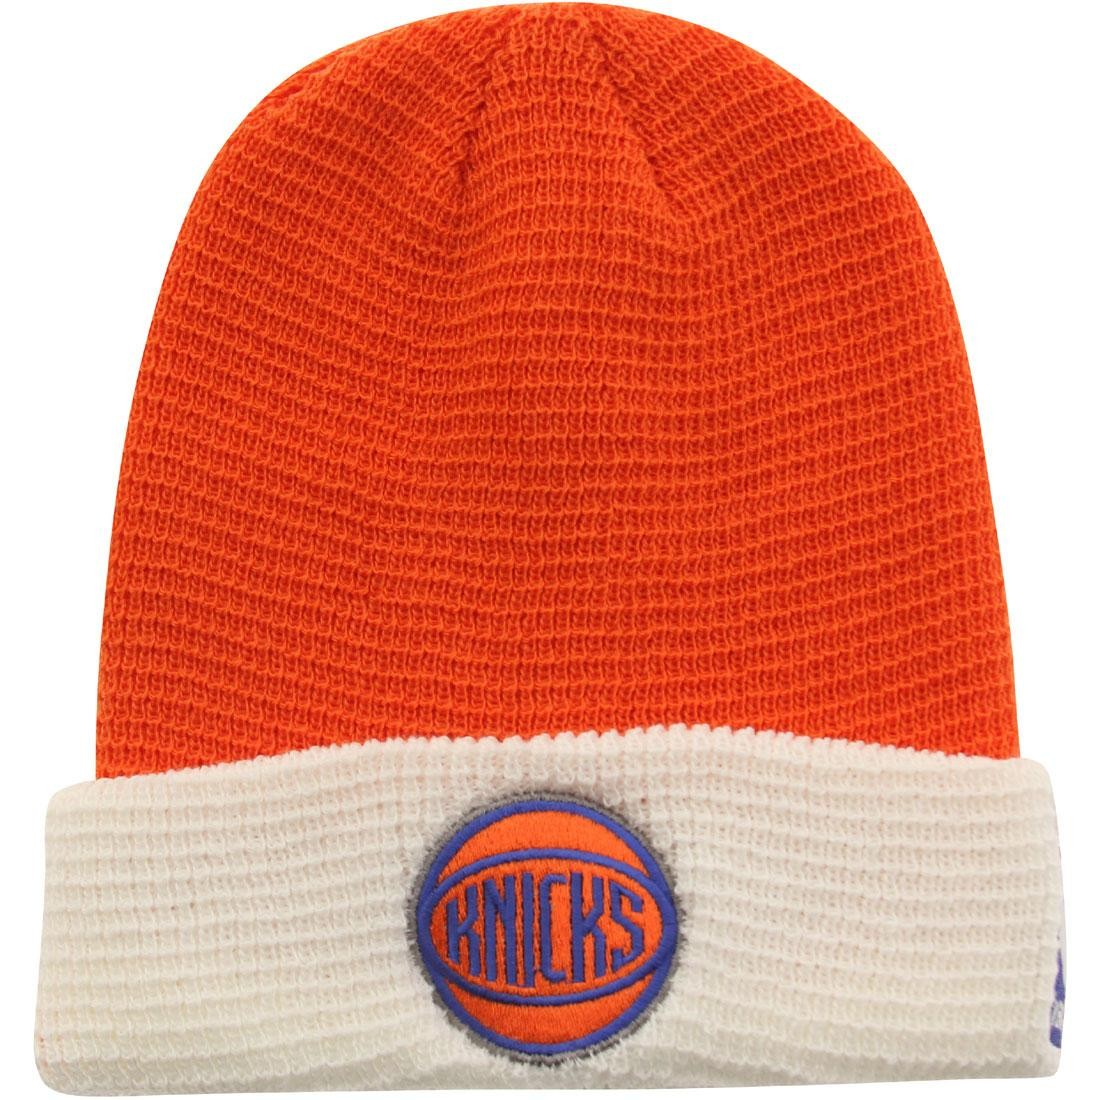 Adidas NBA New York Knicks Team Cuffed Knit Beanie (orange / white)